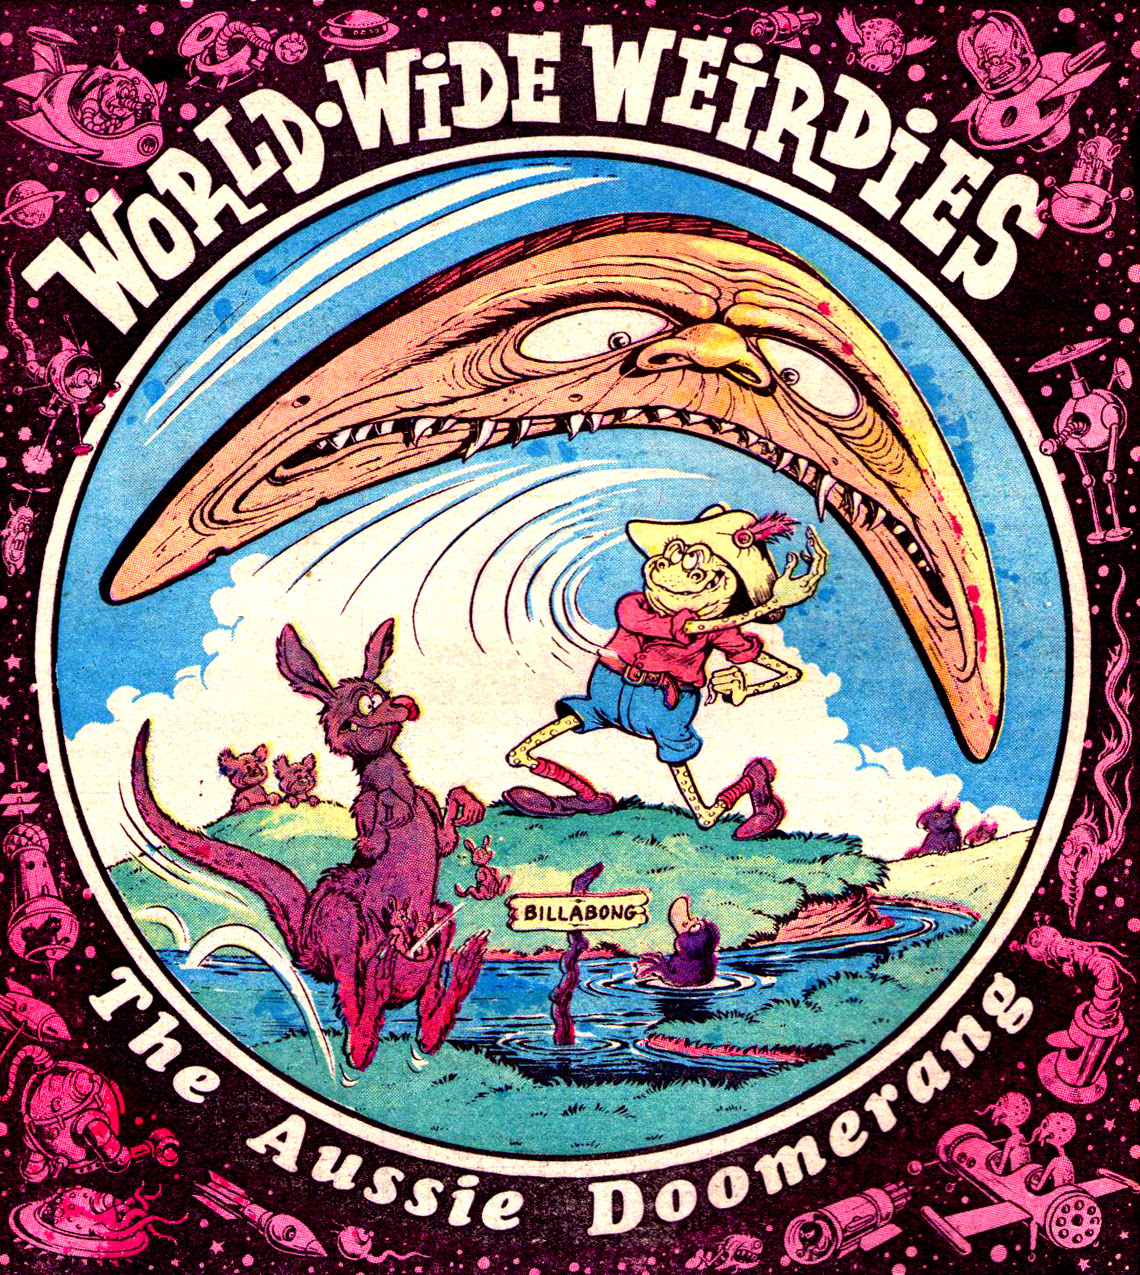 Ken Reid - World Wide Weirdies 16